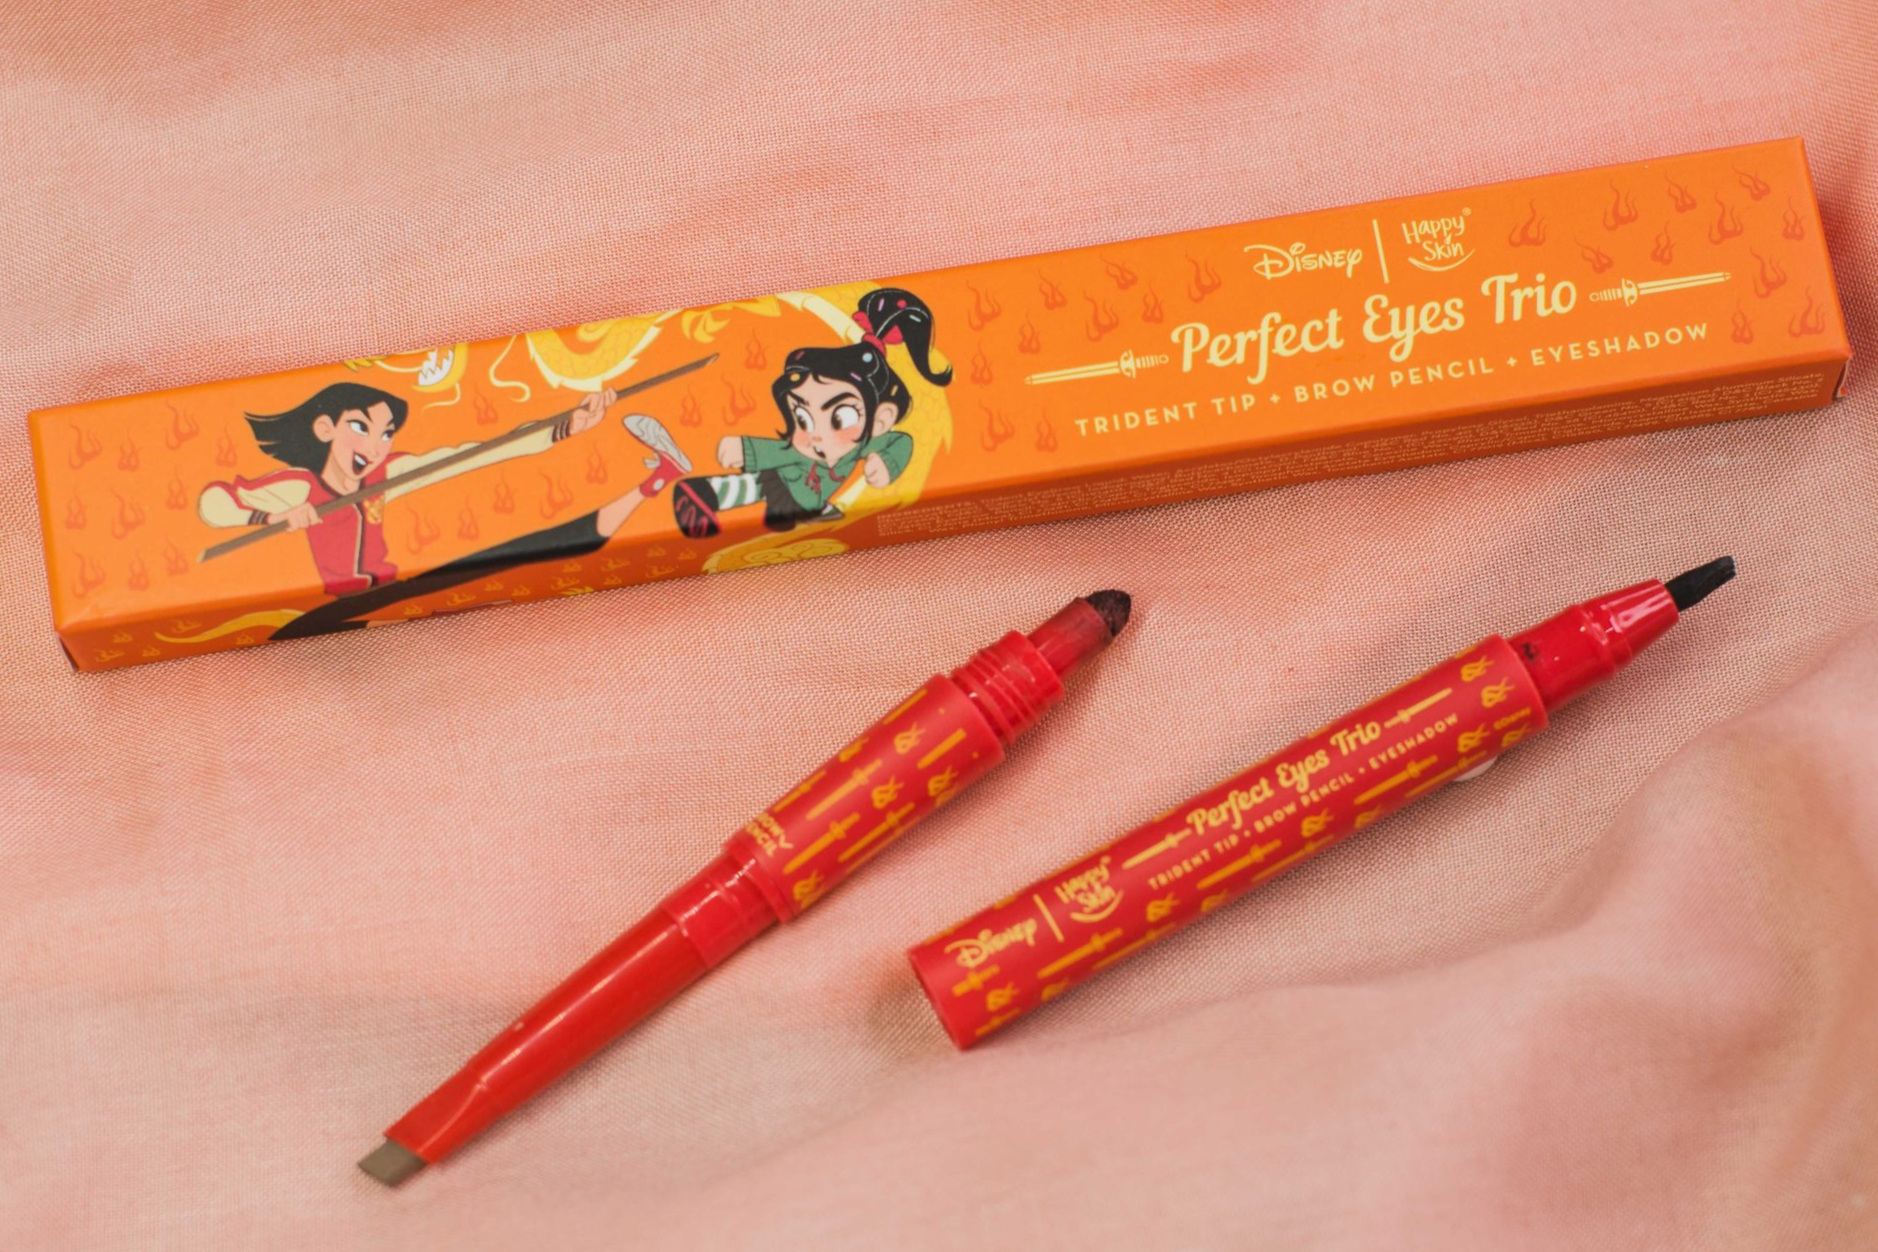 happy-skin_disney-collab_eyes-cheeks-lips_brow_lip-mousse-stick_review-philippines_2019-18.jpg